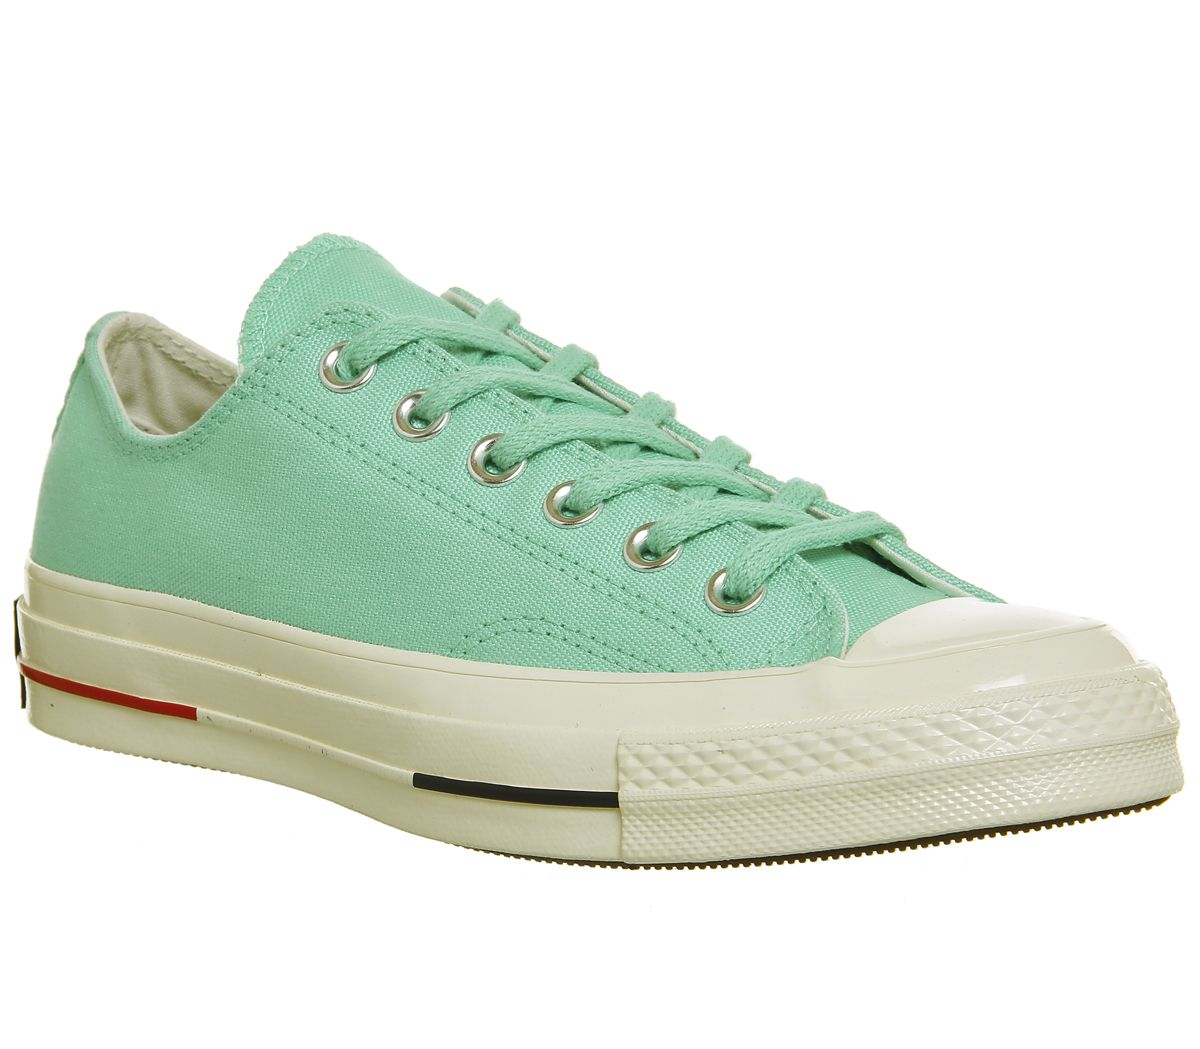 64bdc4ee3532 Converse All Star Ox 70 s Light Menta Navy Gym Red - His trainers